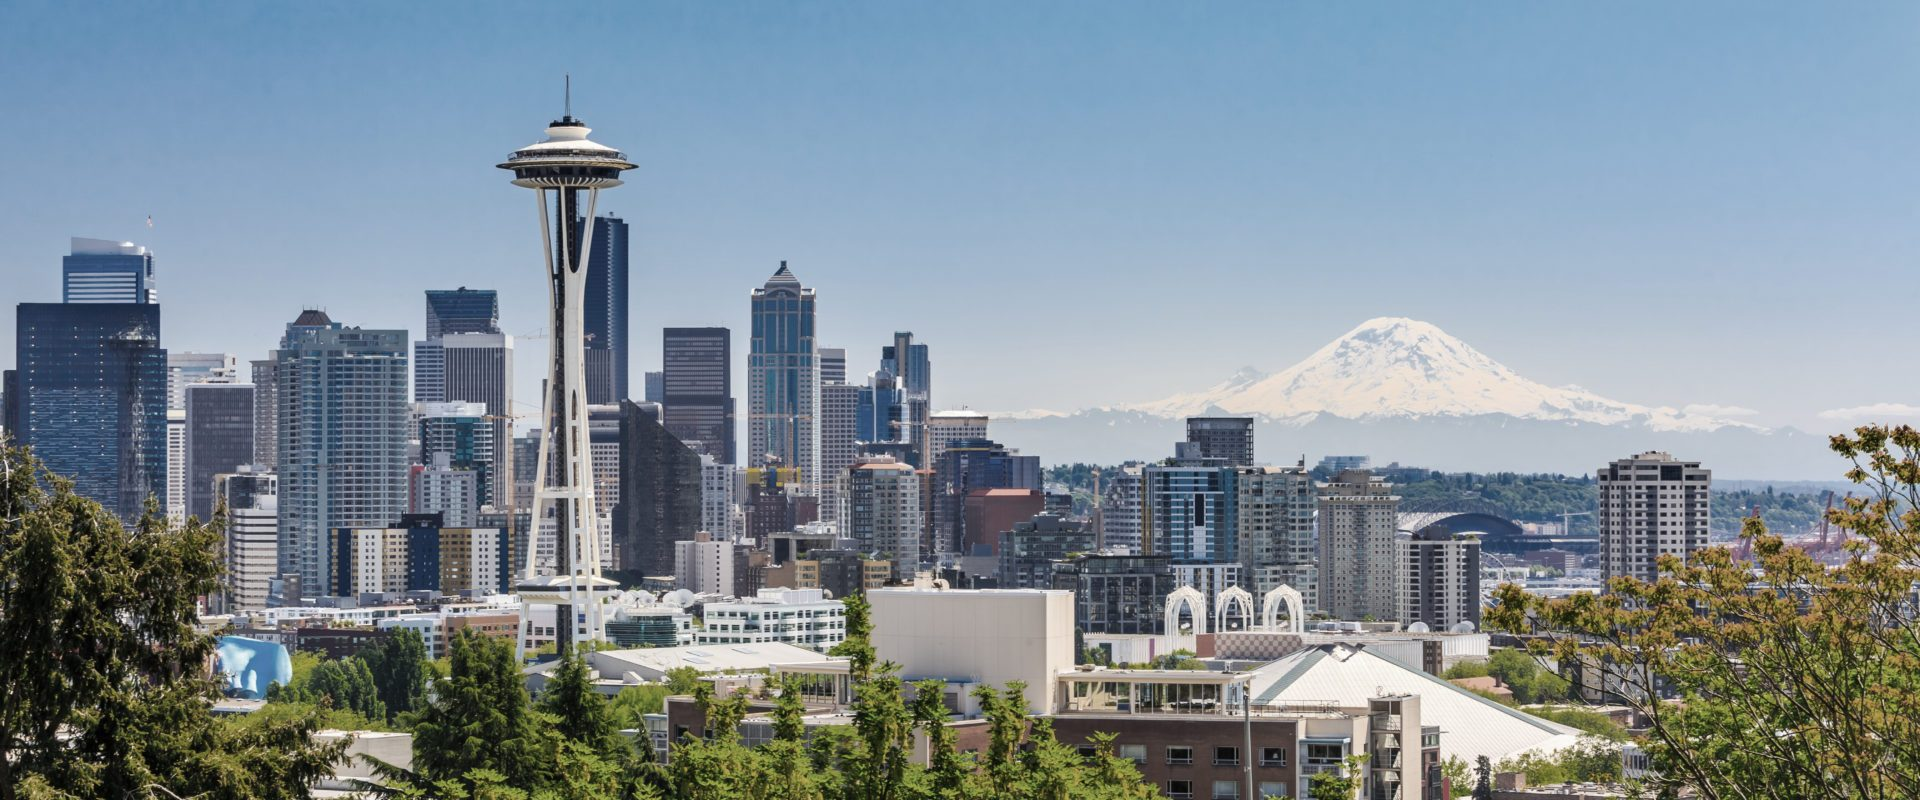 Stanton Chase announces expansion into Seattle Cover Image